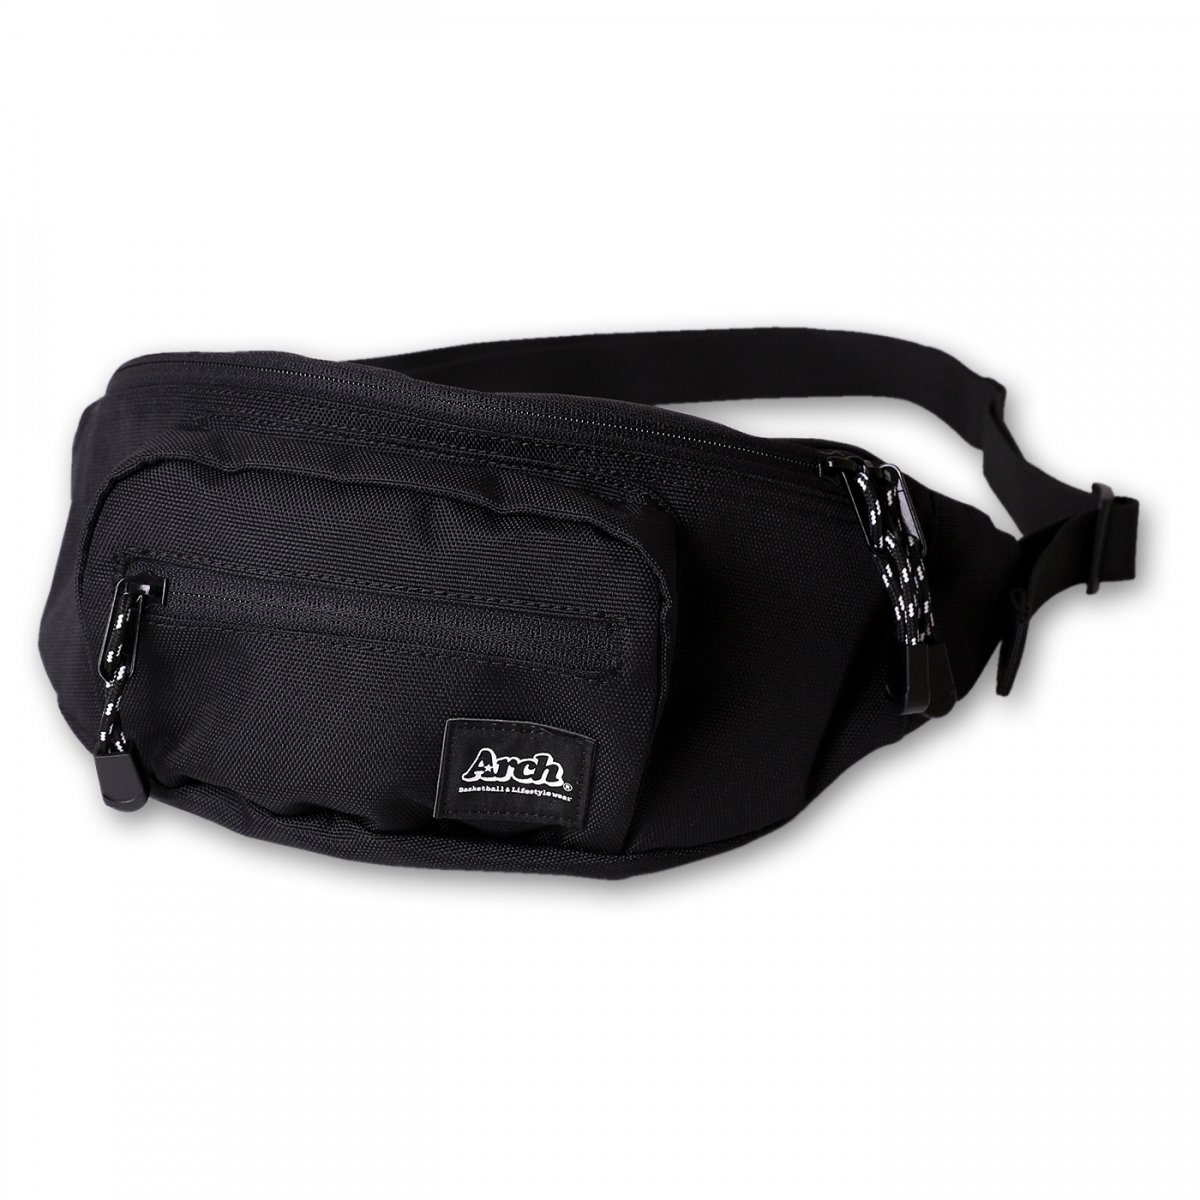 holiday body bag【black】